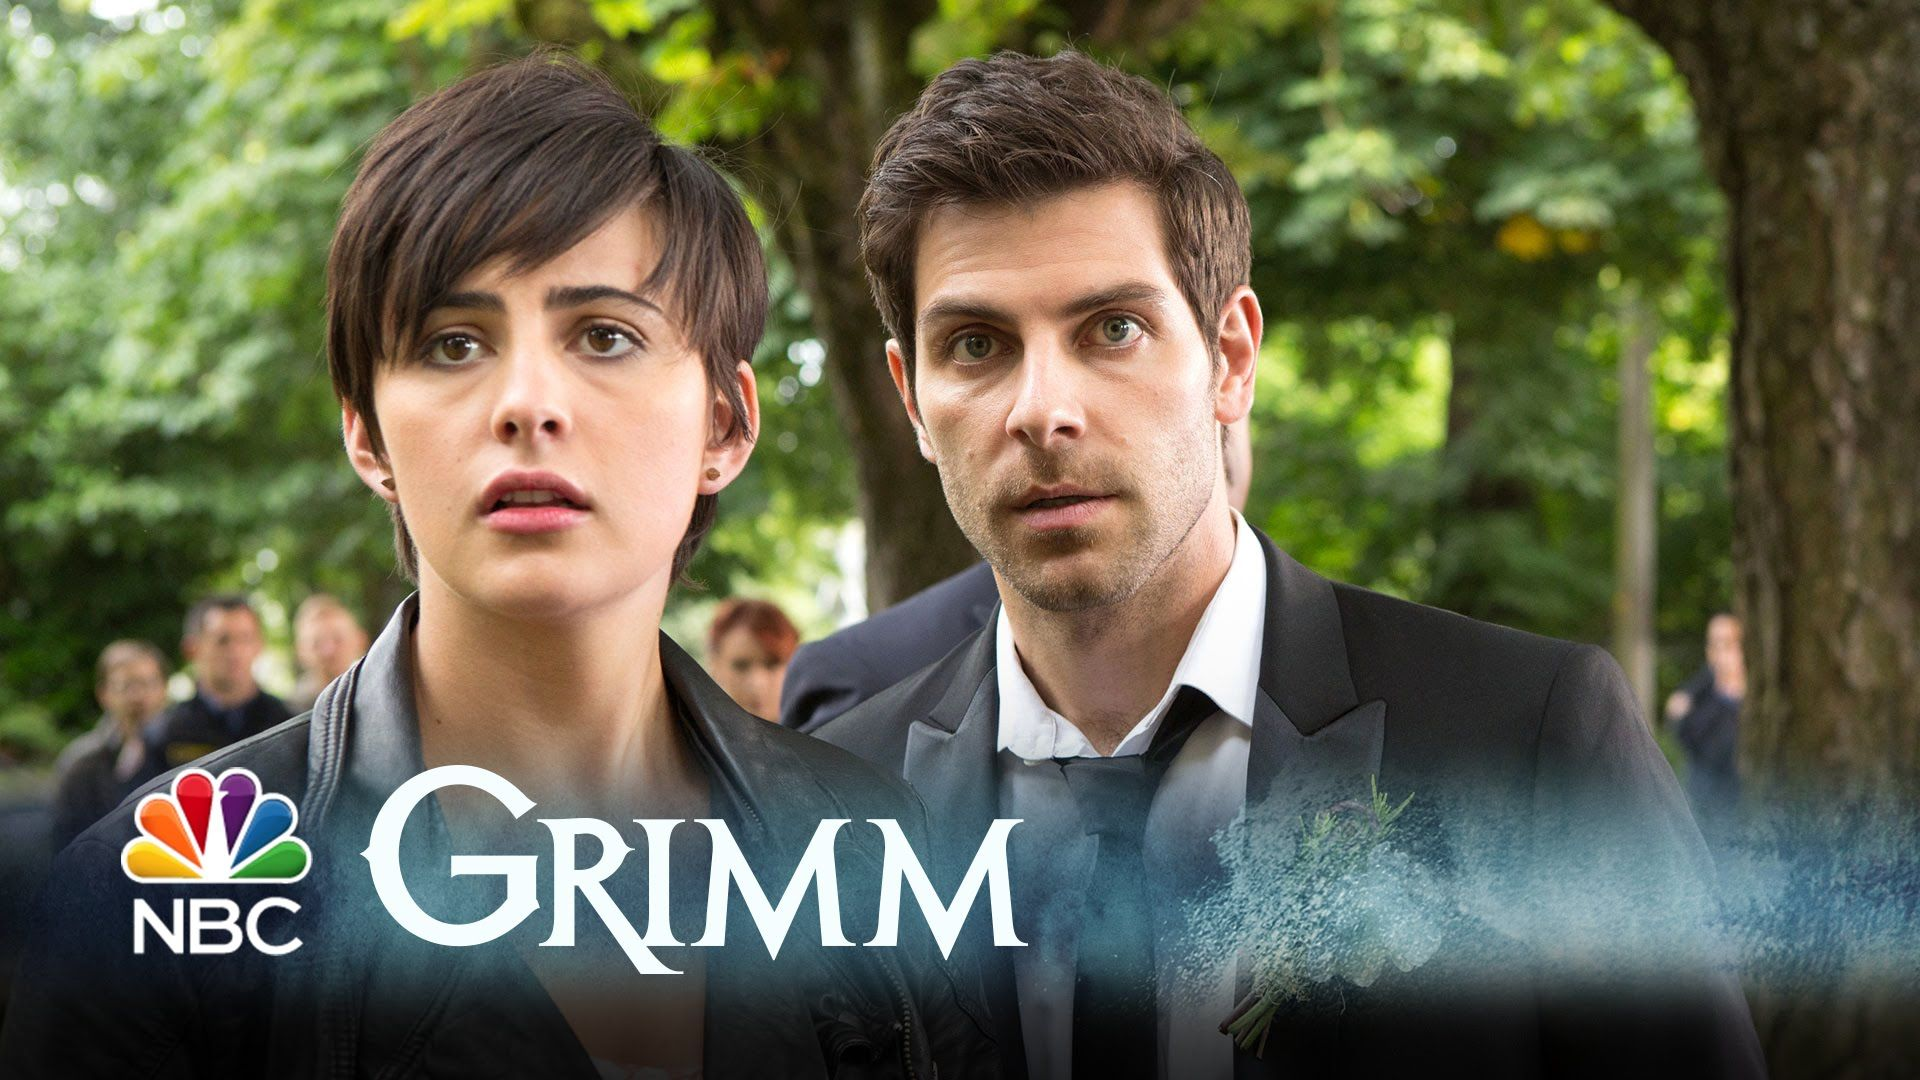 #Grimm - Blinded to the Truth (Preview)